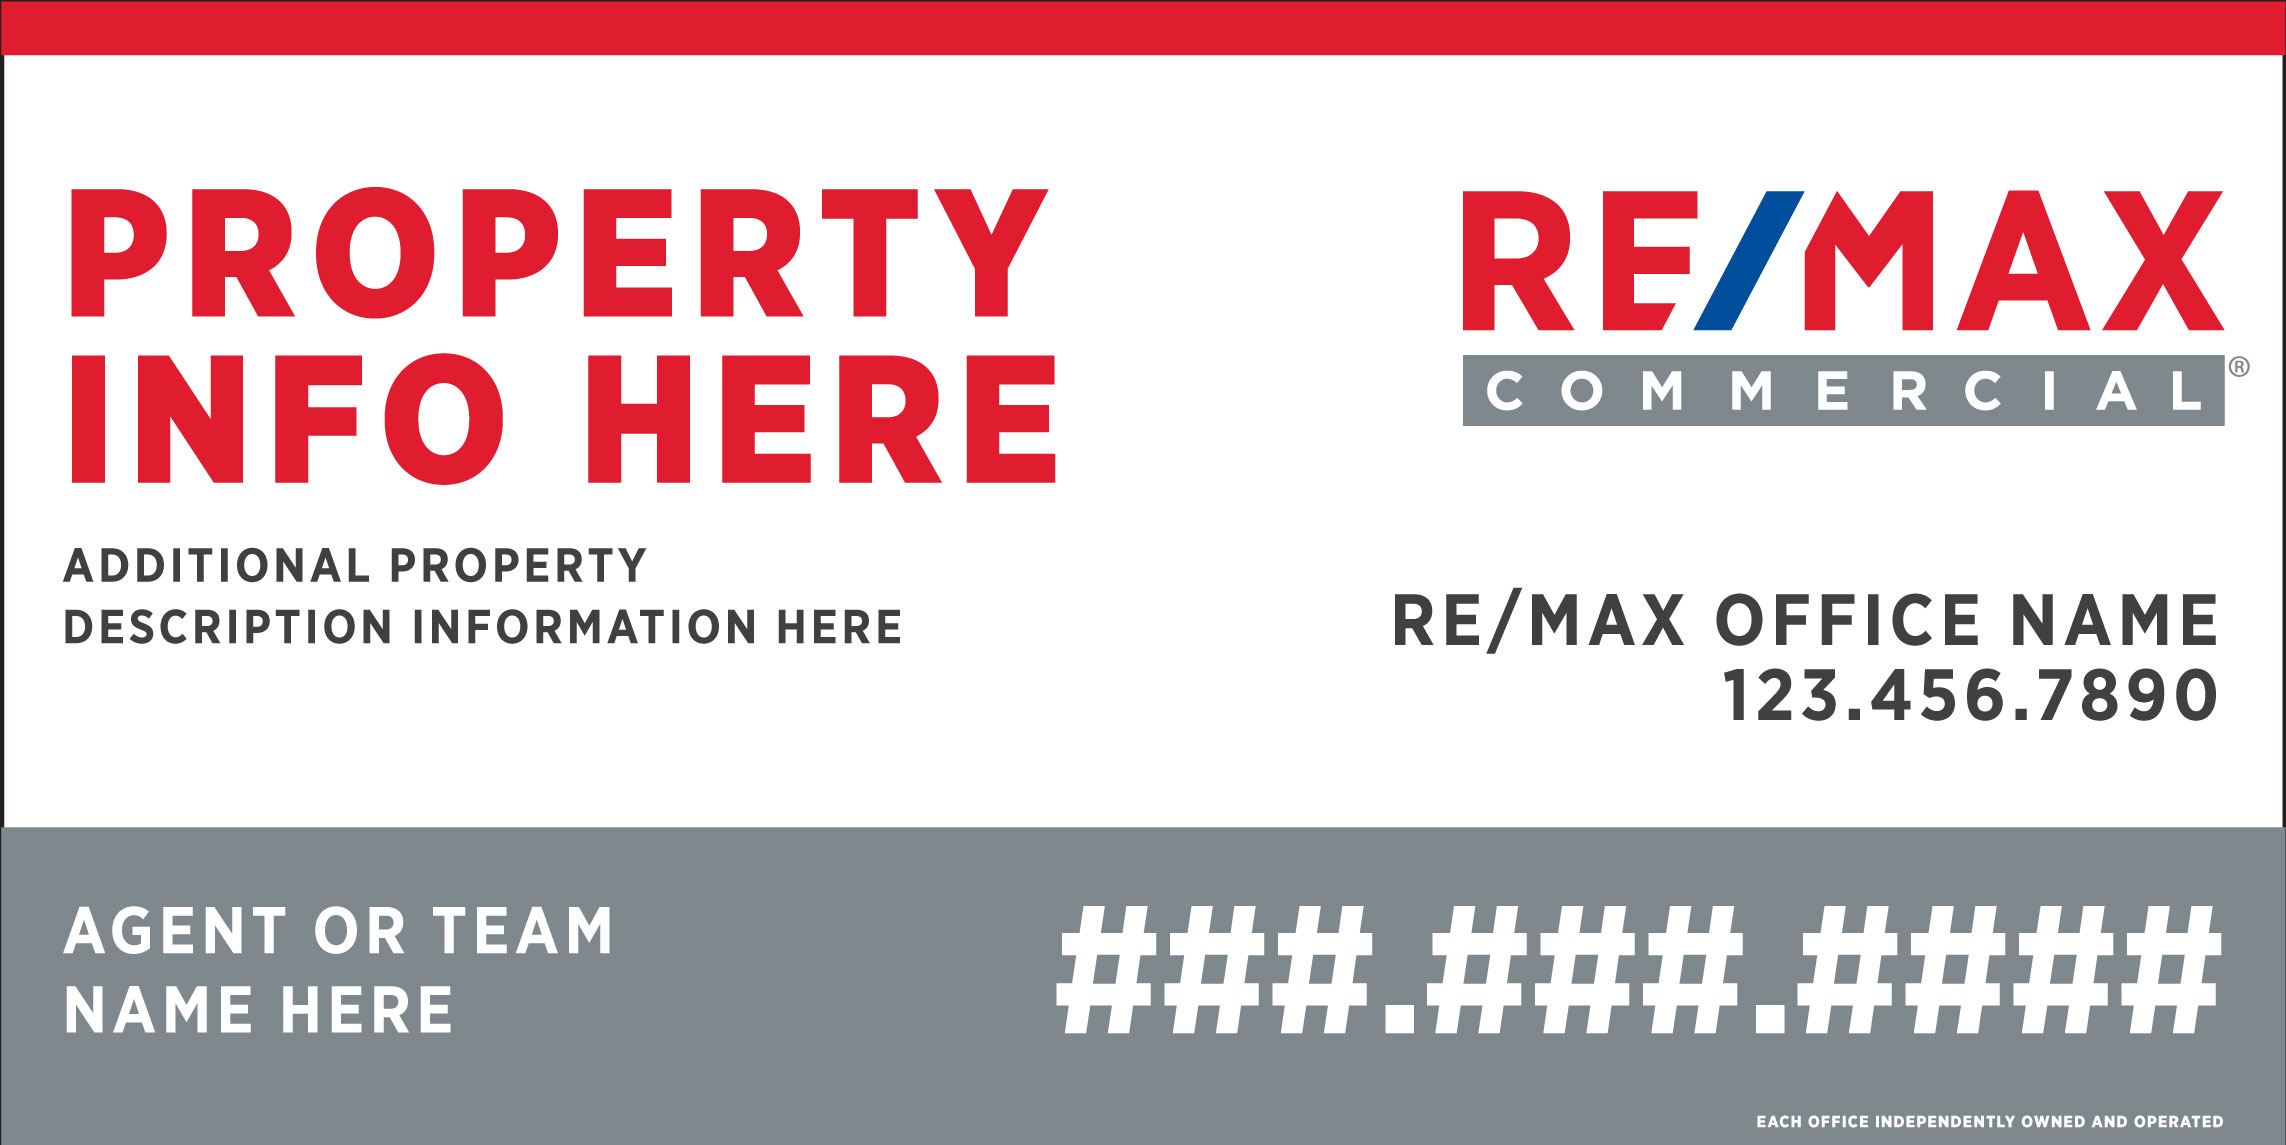 RE/MAX 4x8 Commercial Sign